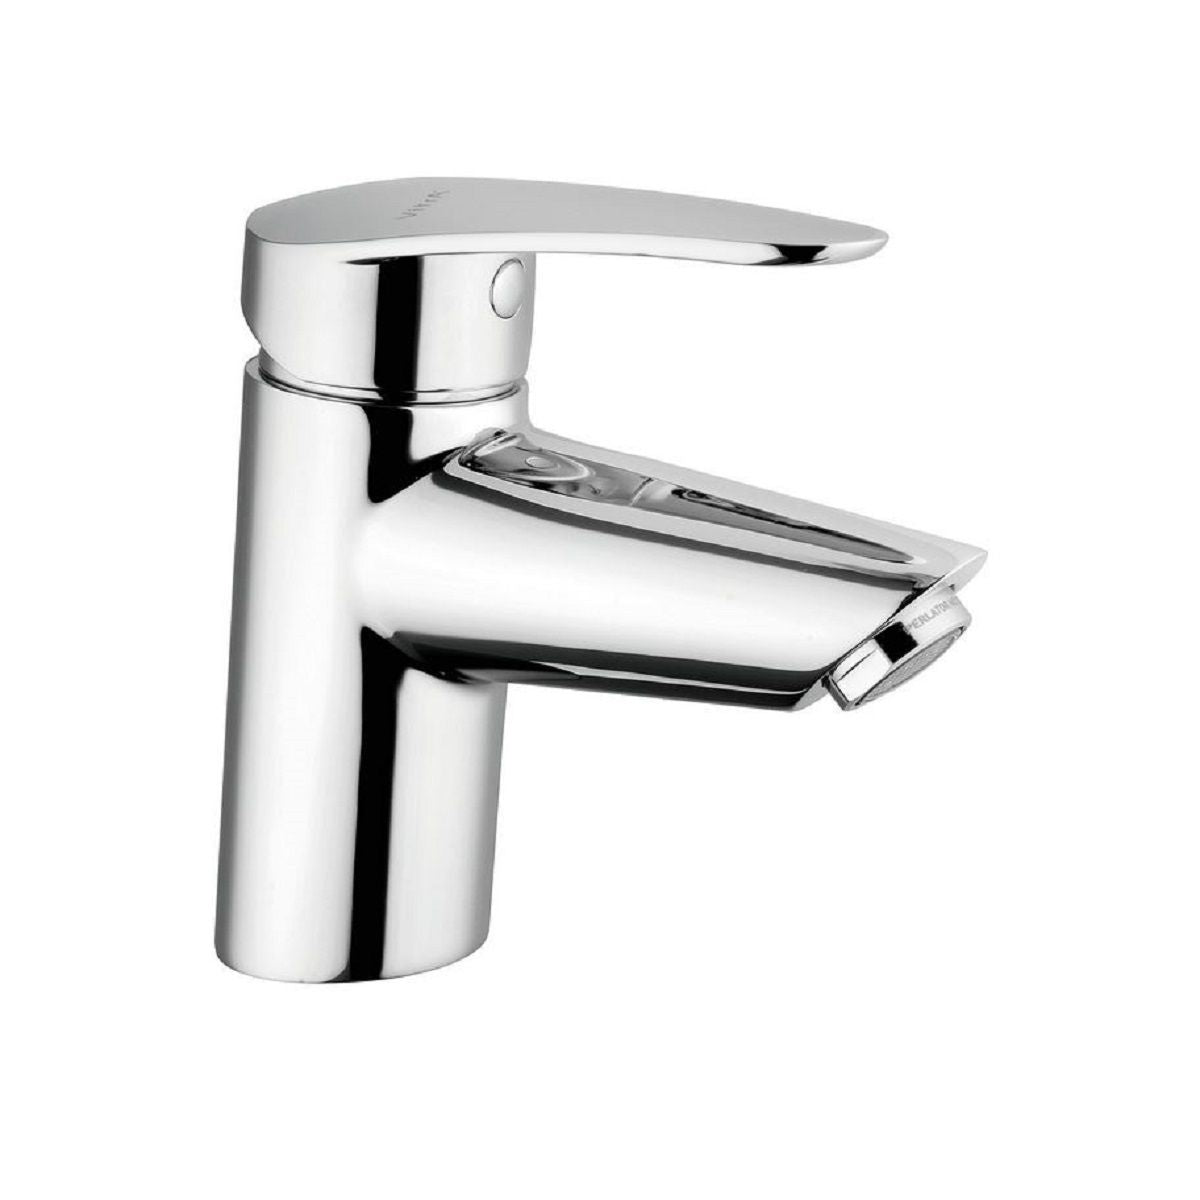 Vitra Dynamic S basin Mixer - Blue Sky Bathrooms Ltd